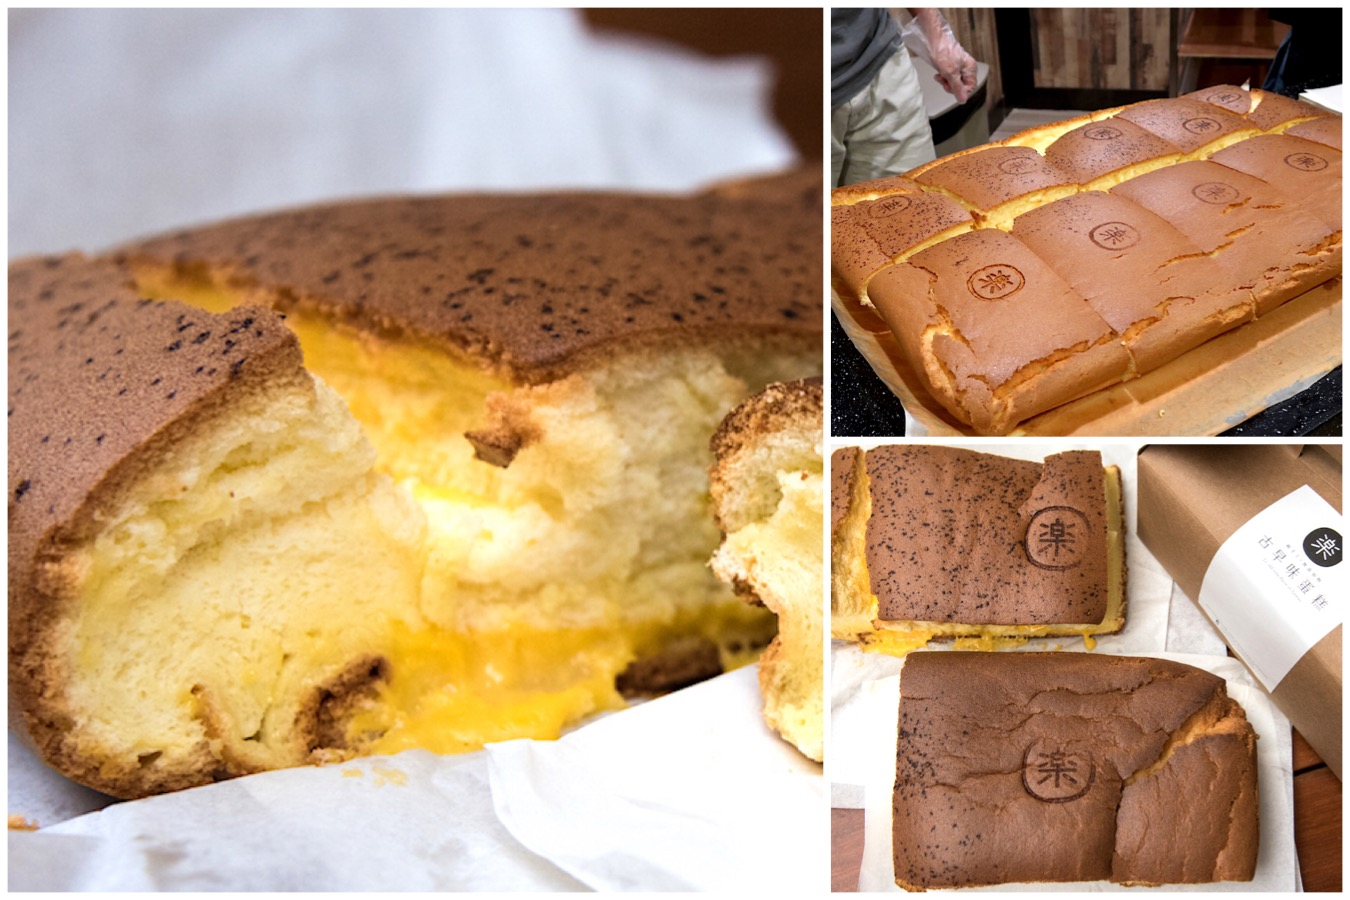 Le Castella - Popular Fluffy Castella Cake With Cheese Now In Singapore, At Tampines One